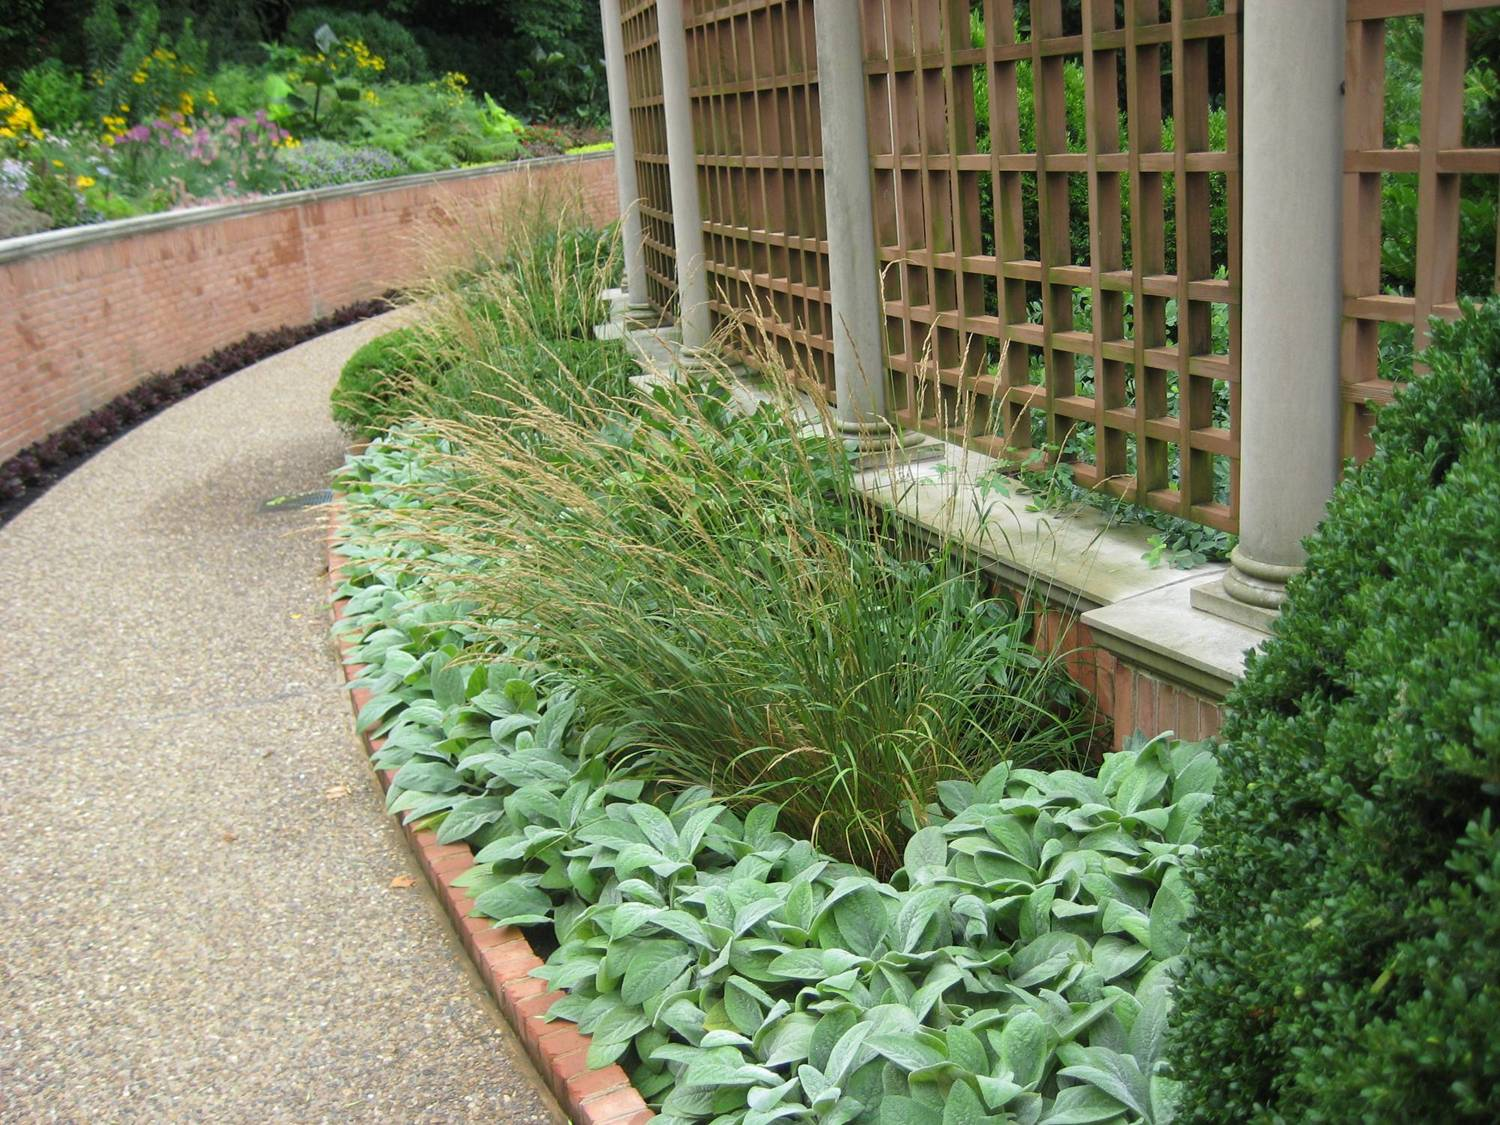 Garden Bed Designs Garden ideas and garden design